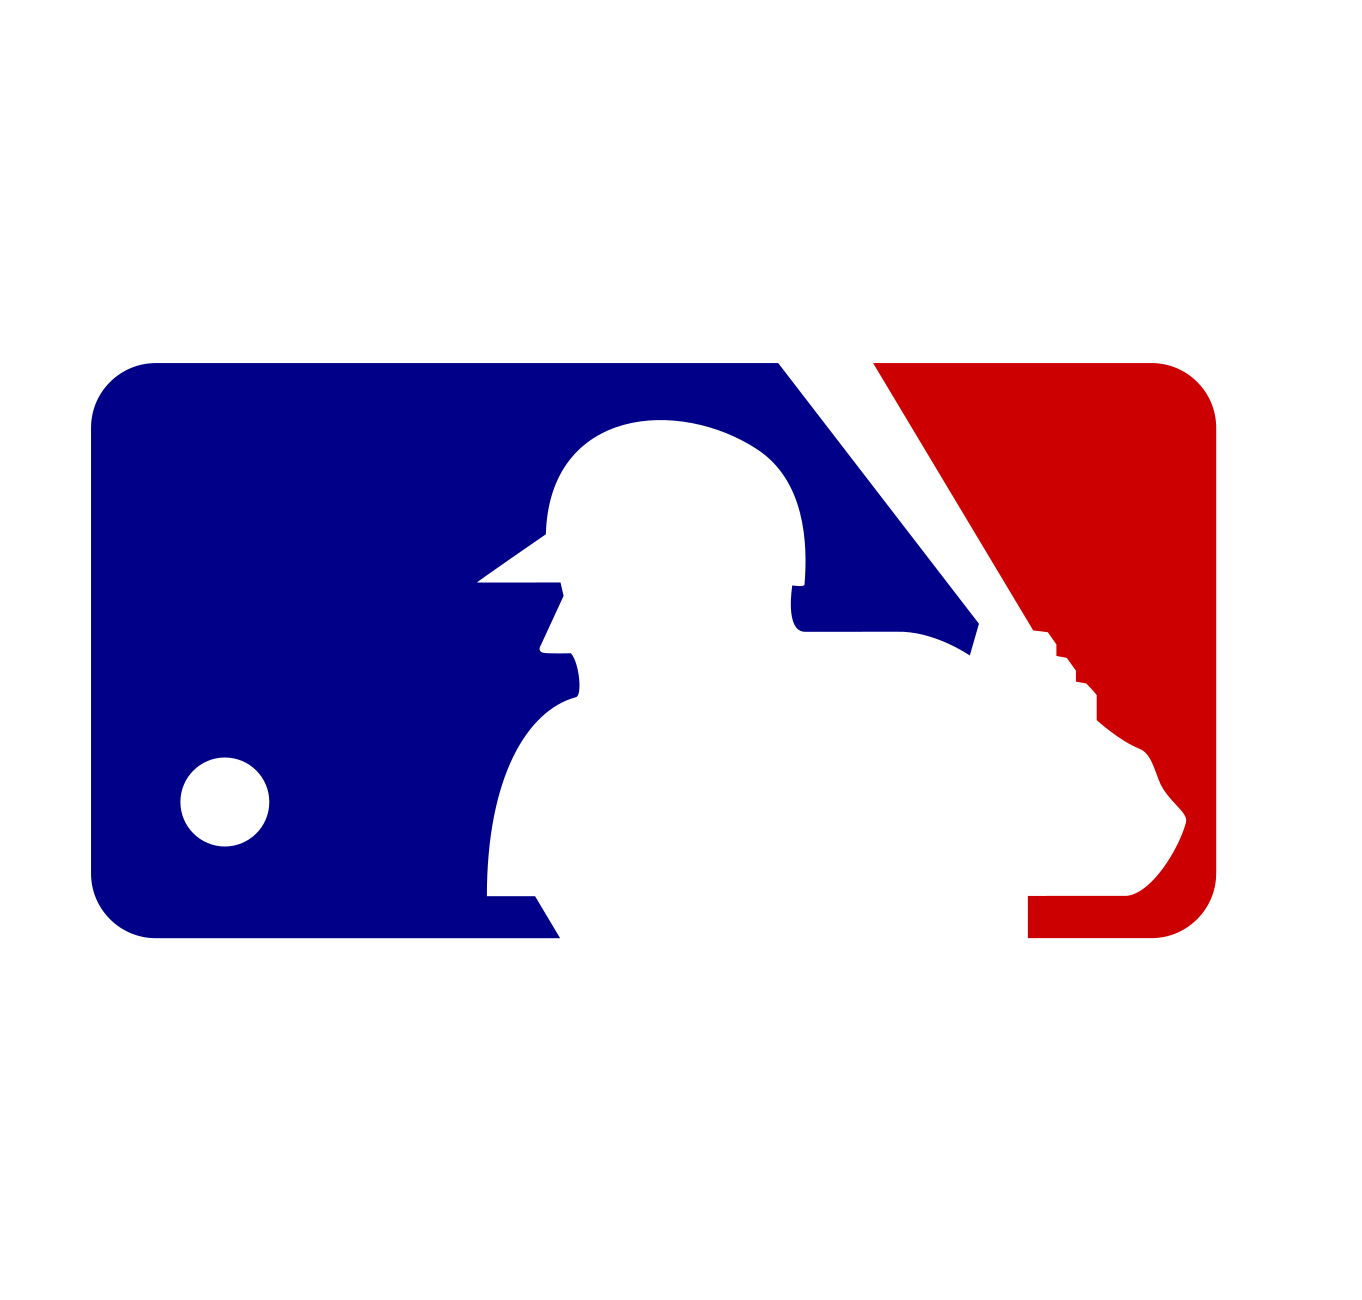 1200px-Major_League_Baseball_logo.square